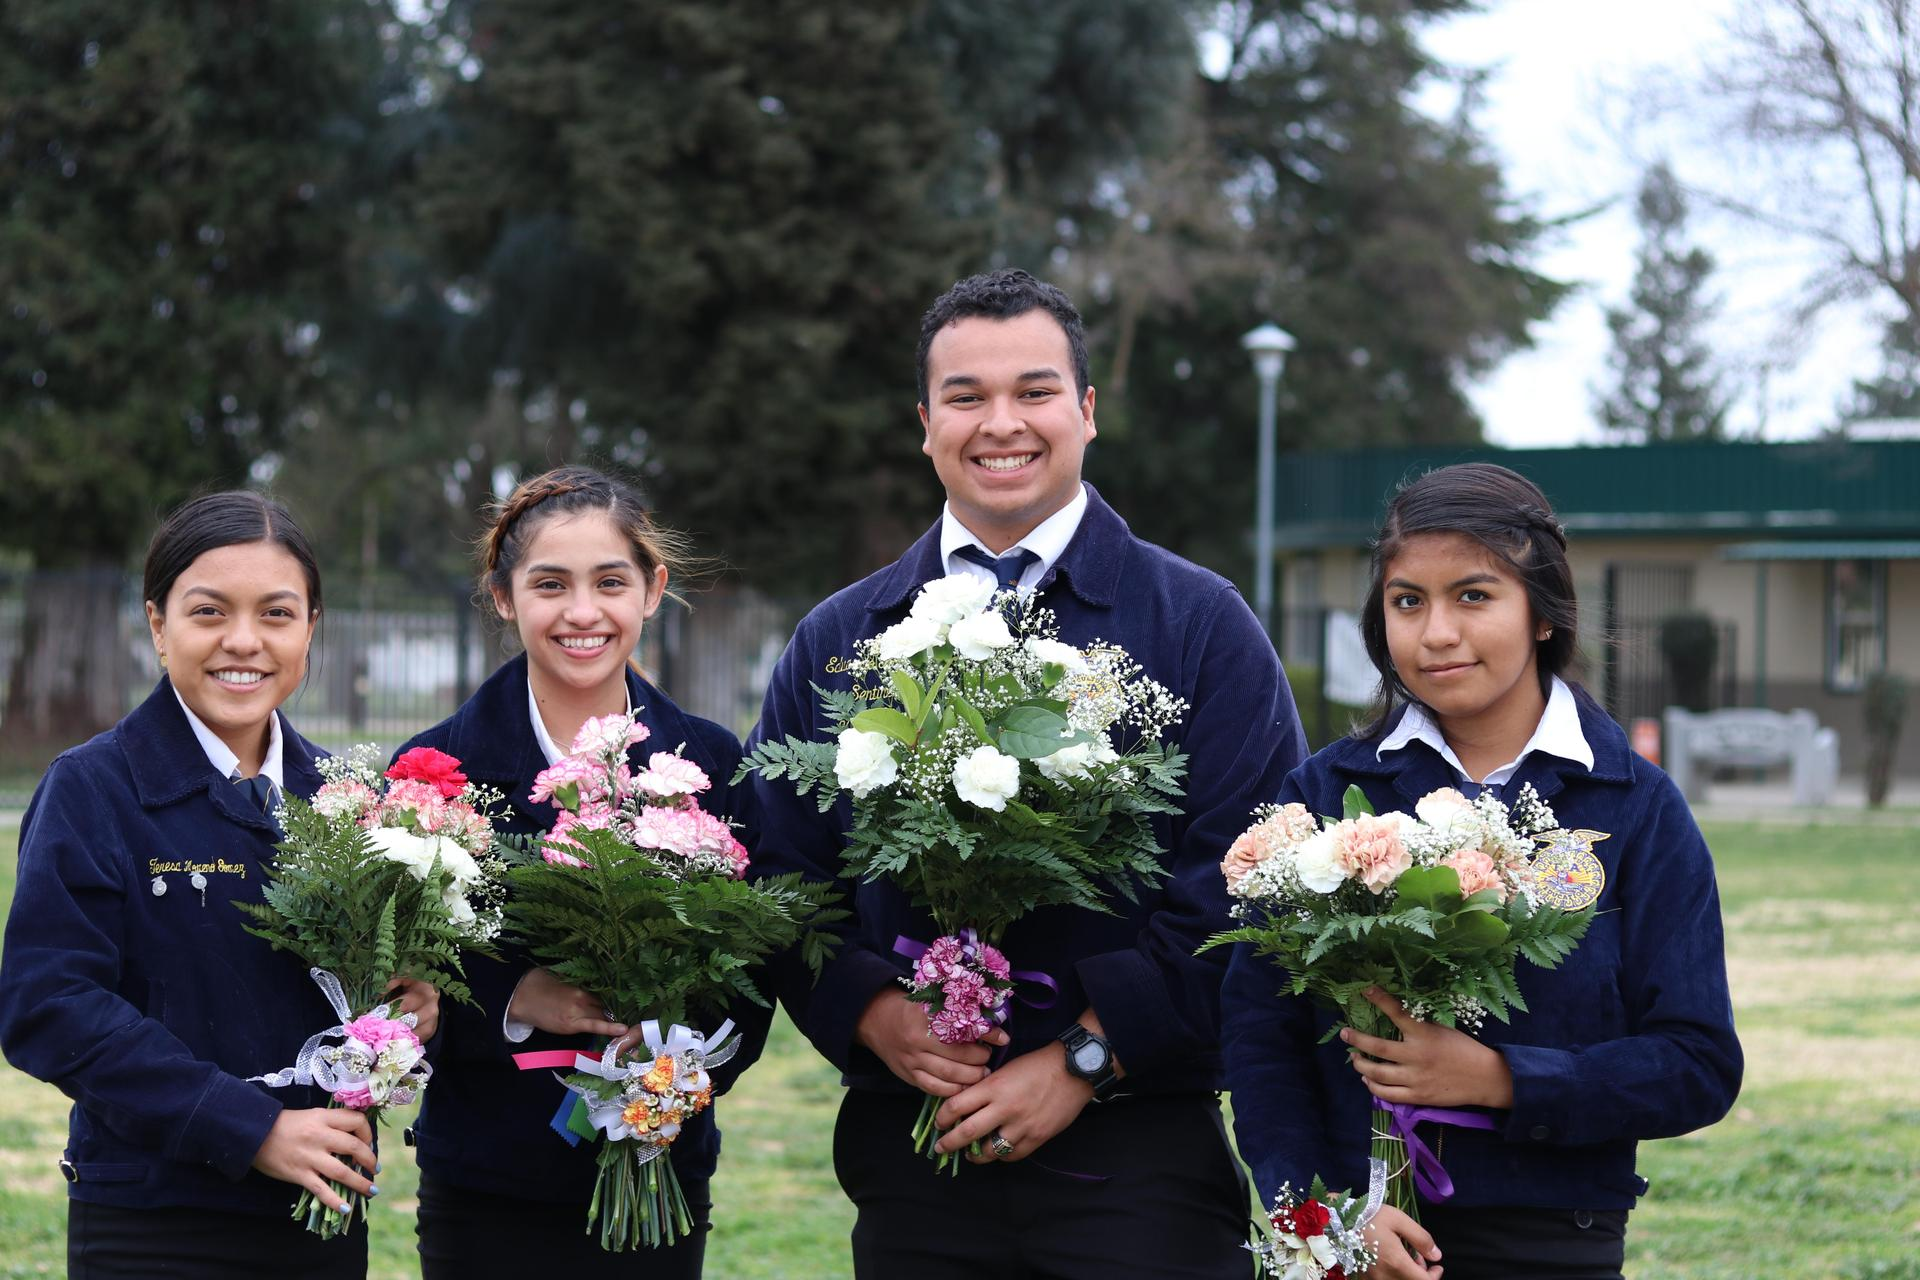 Students pose with flowers before FFA award ceremony.